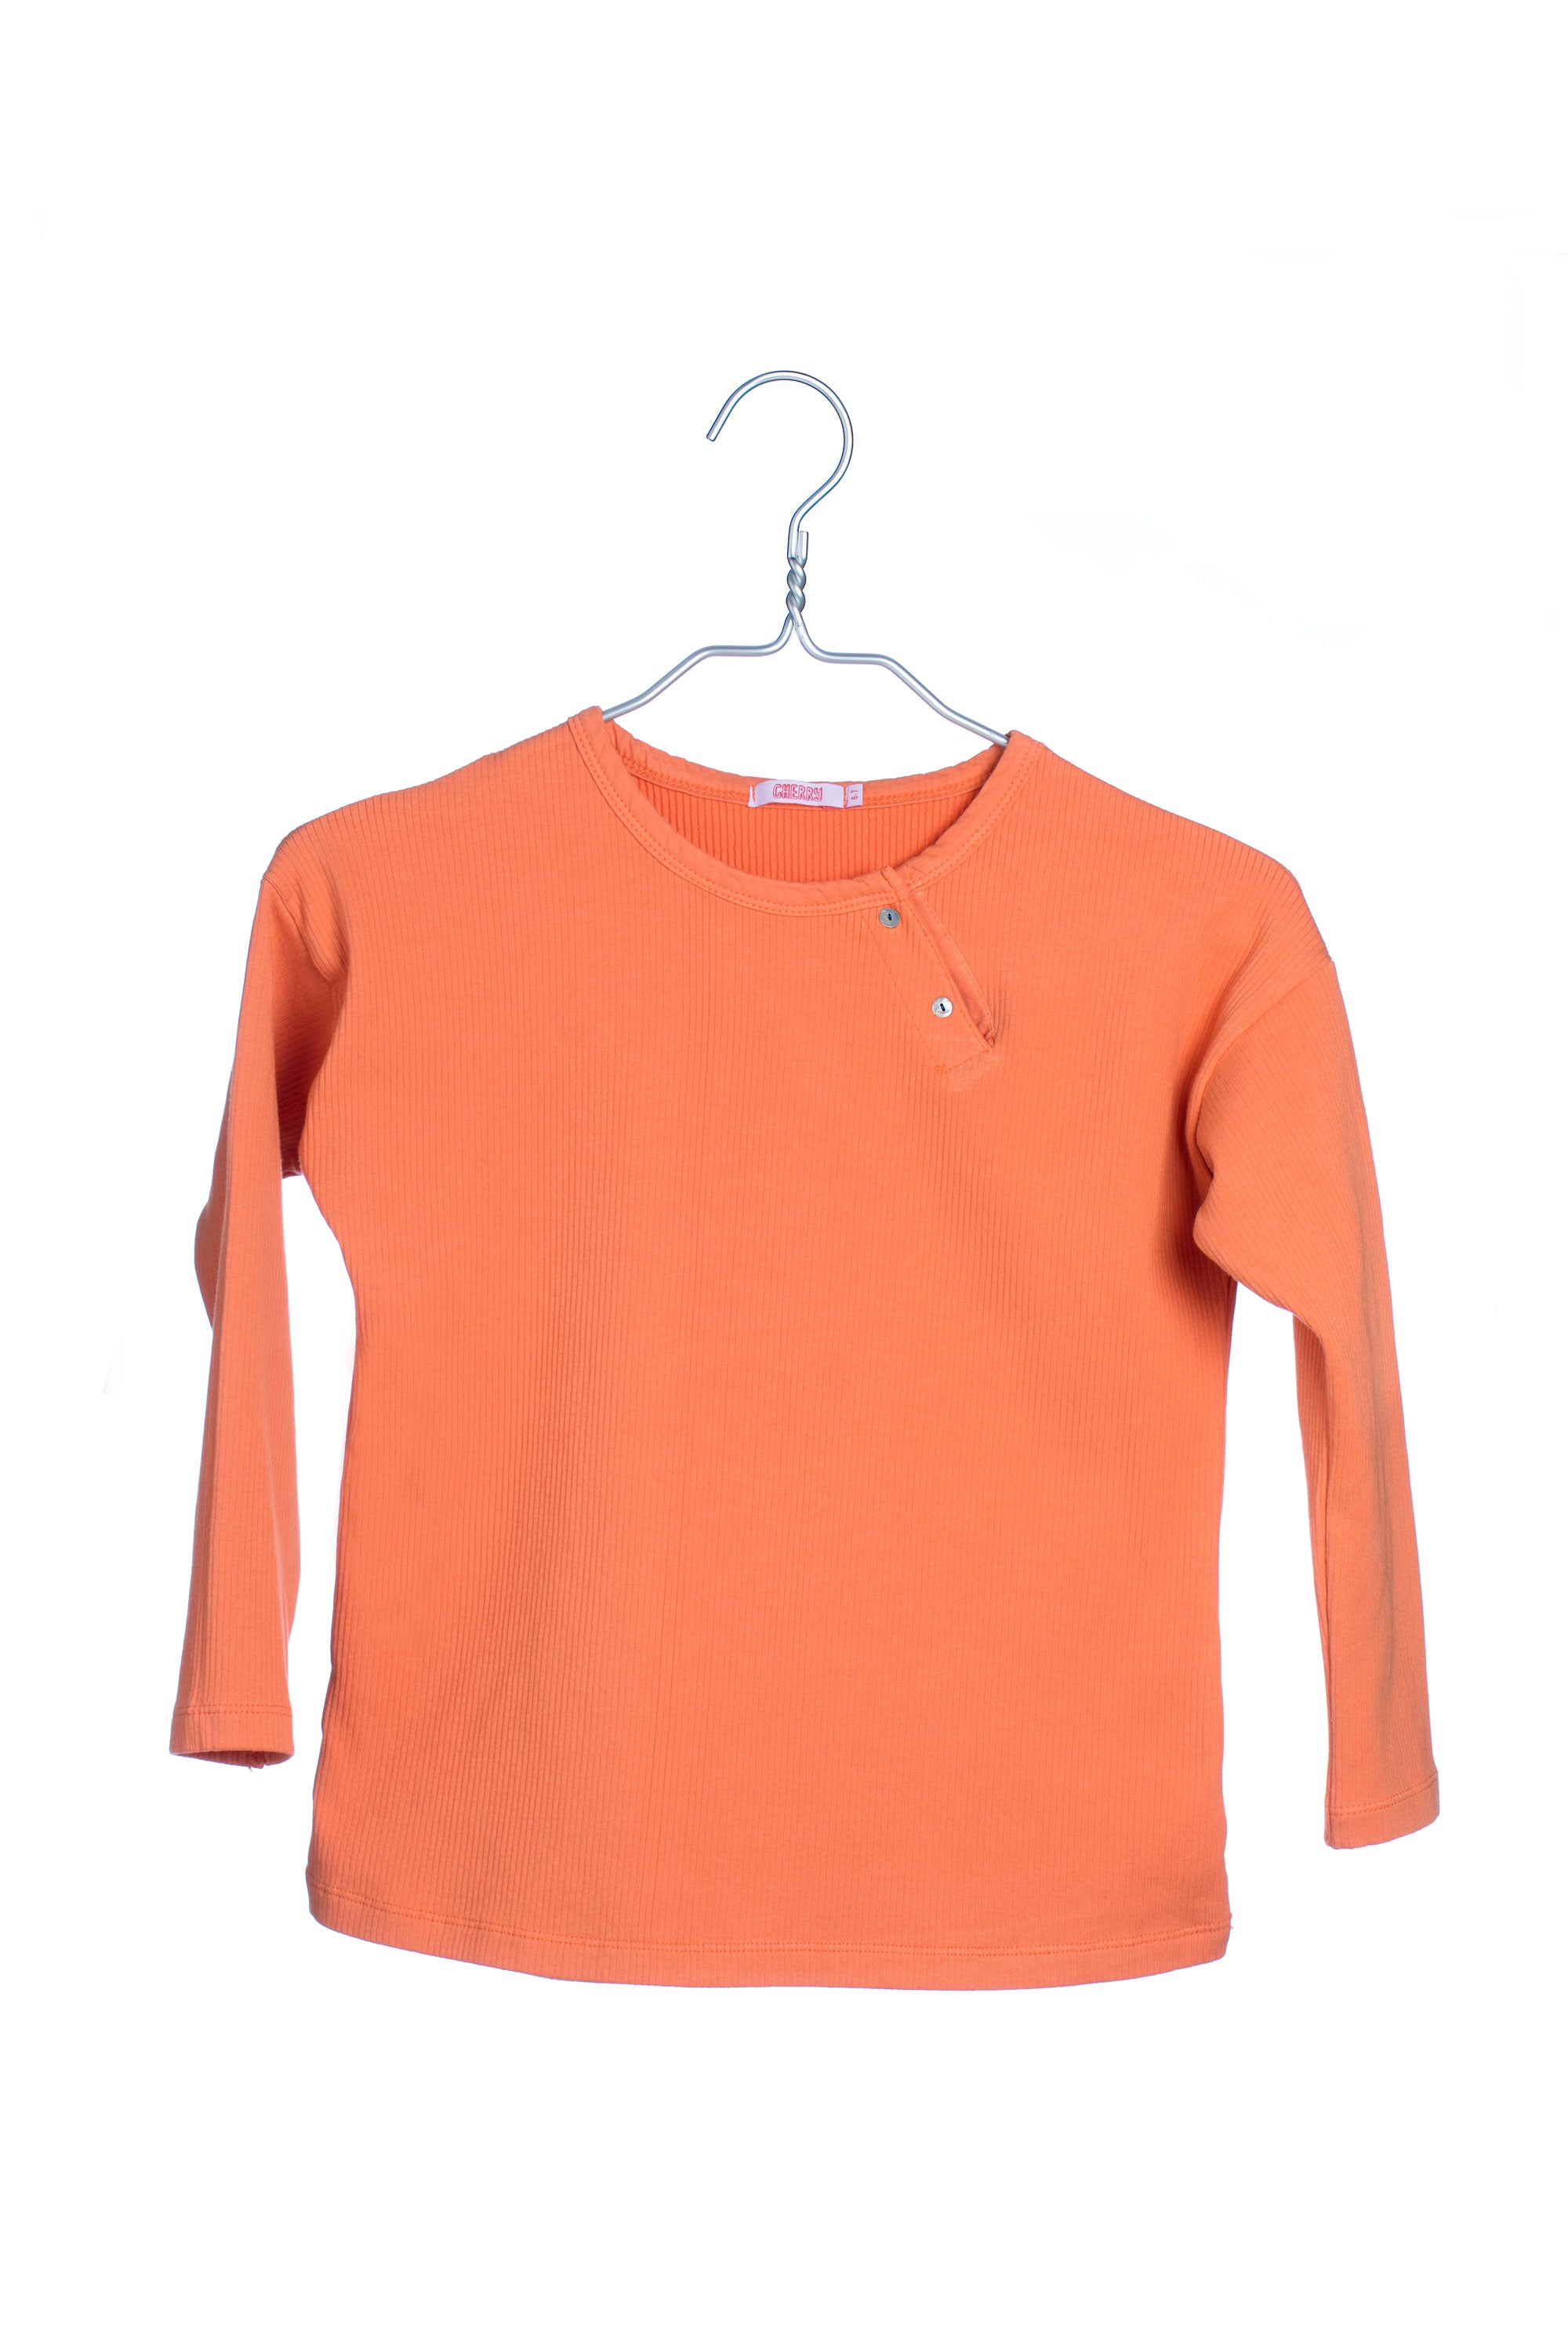 1636 Rib Sweat - Orange